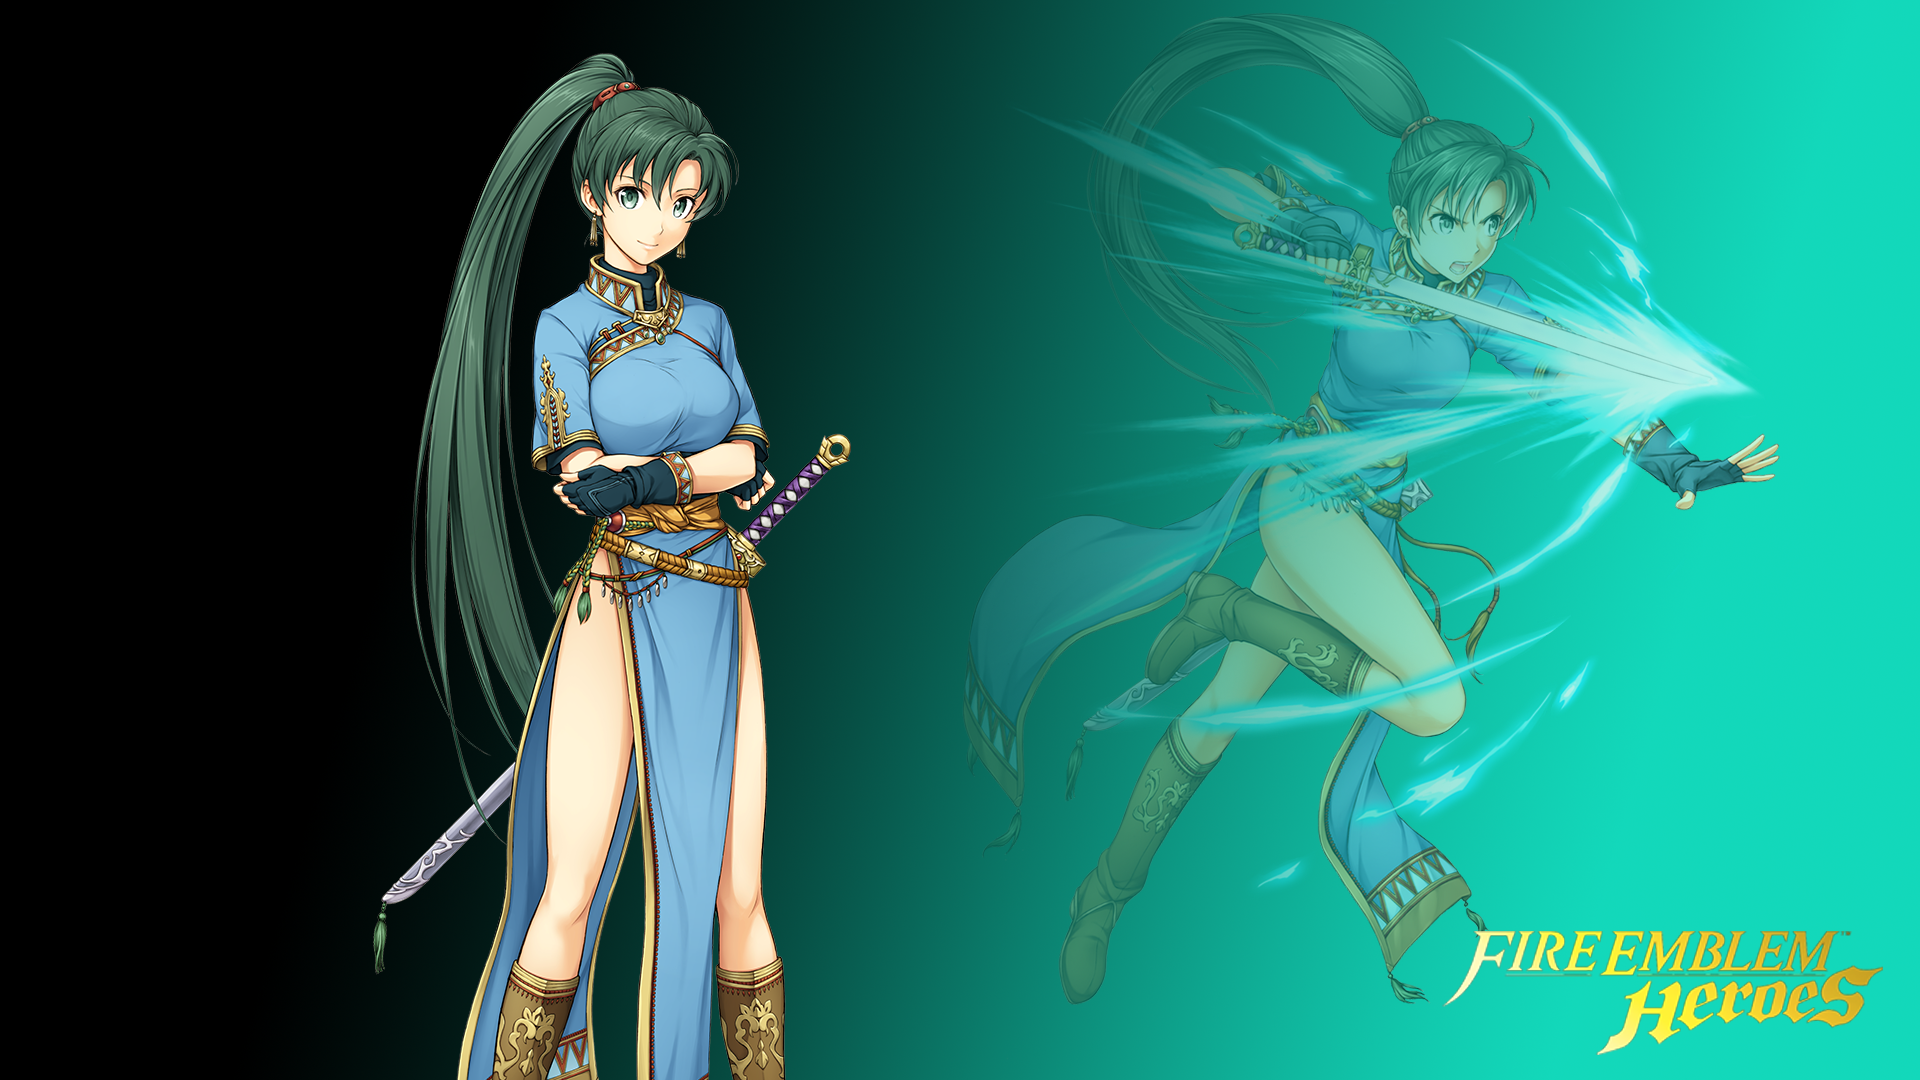 Fire Emblem Heroes Lyn Wallpaper 1920x1080 Res By Russell4653